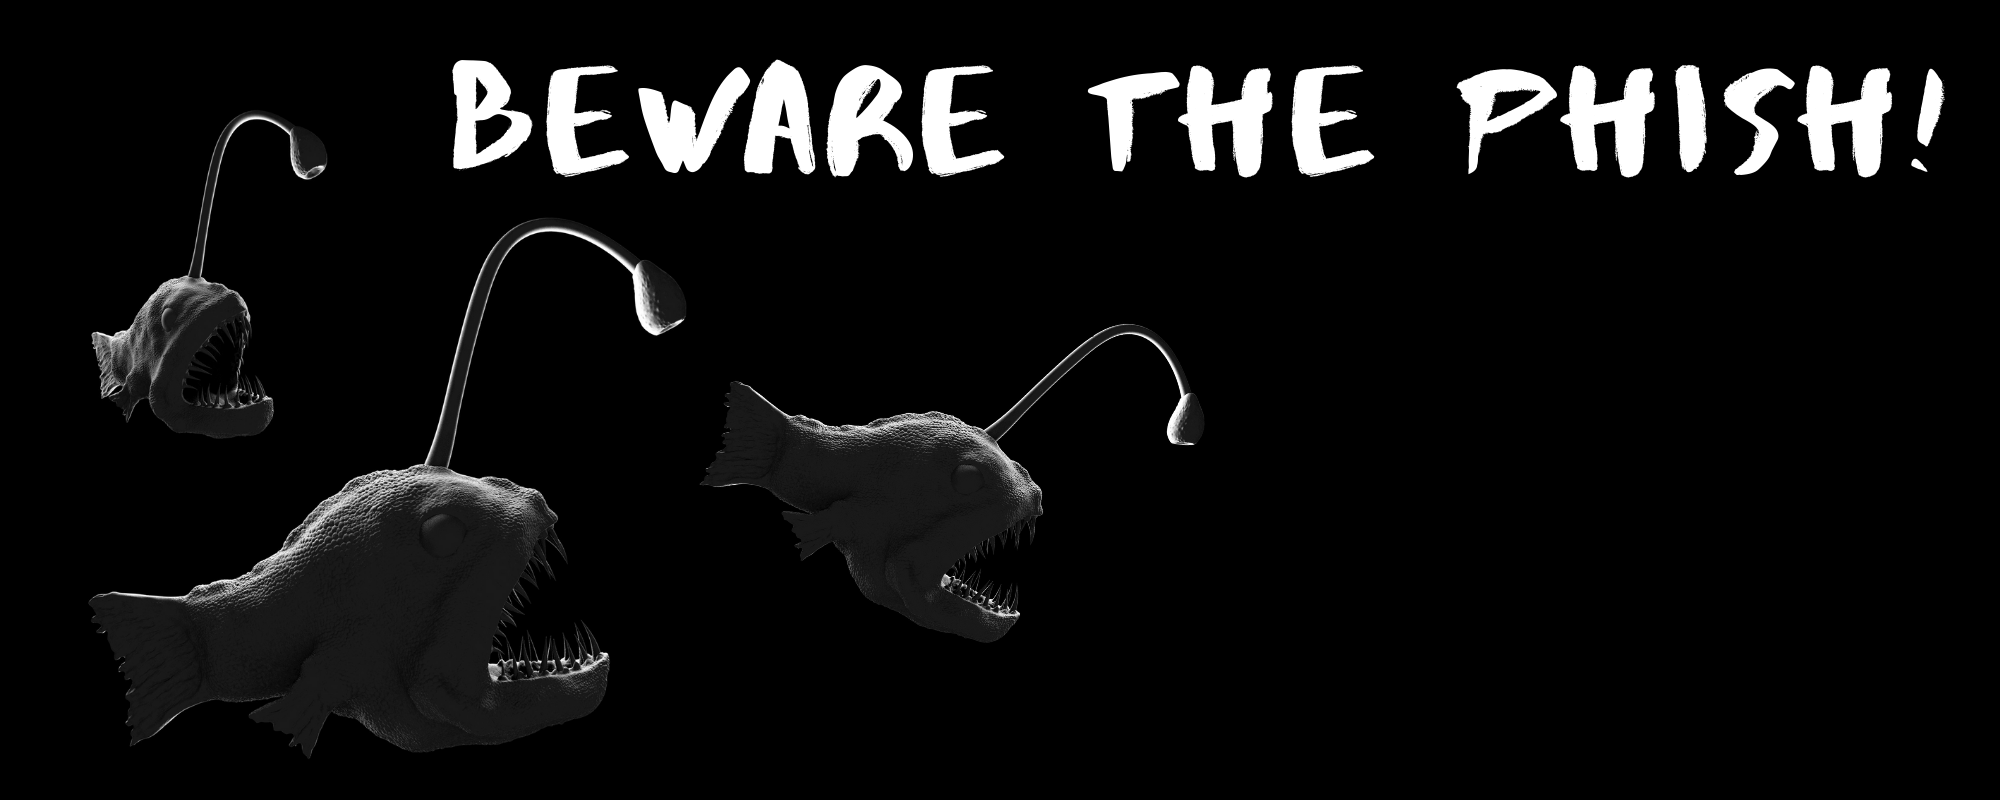 "Picture of anglerfish with the words, ""Beware the Phish!"""